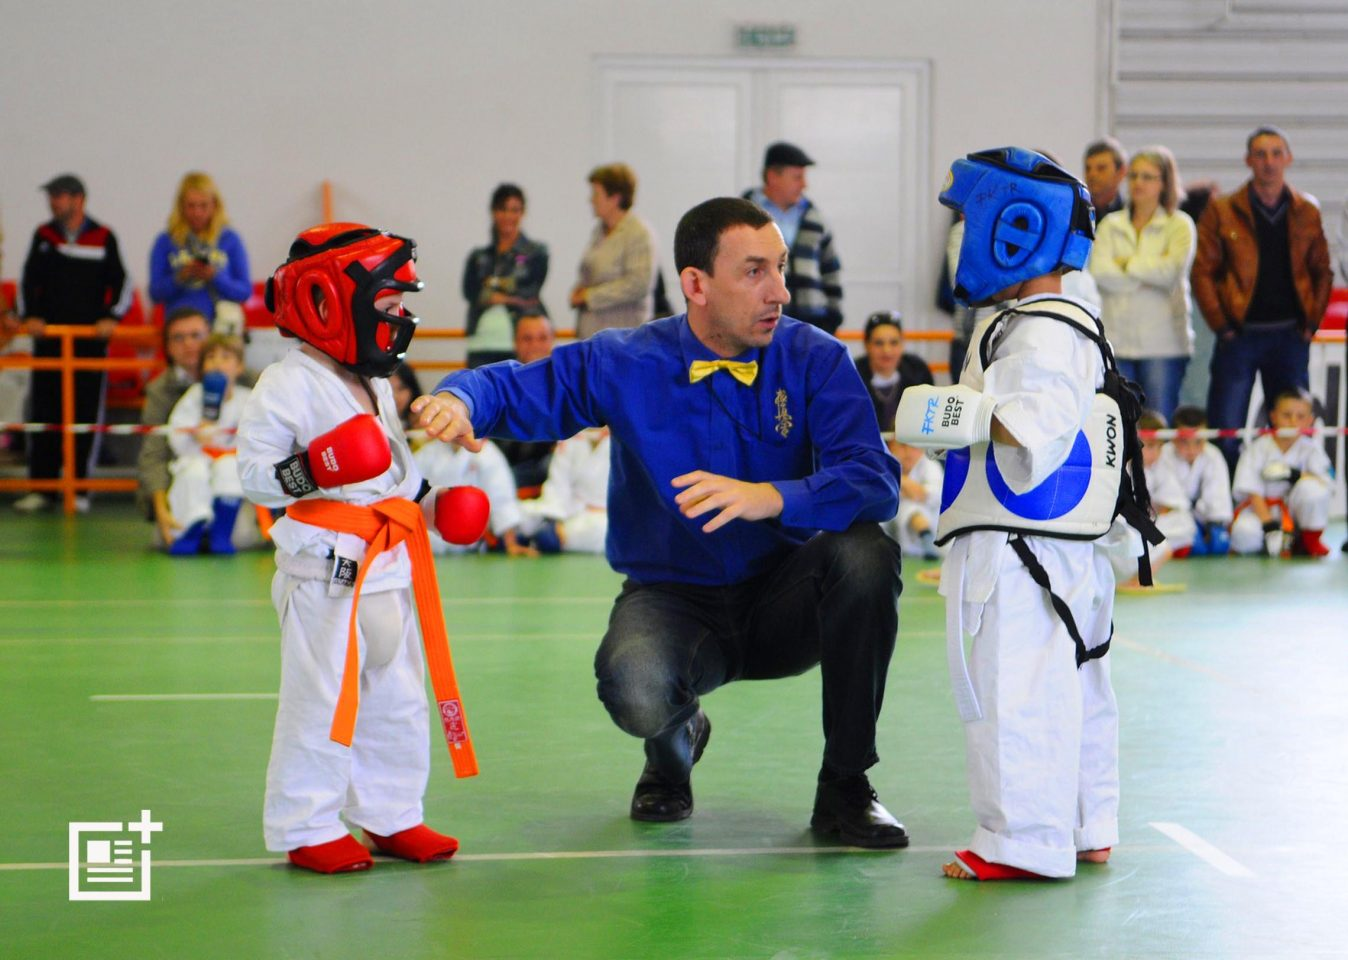 Martial Arts Can Seriously Harm Kids